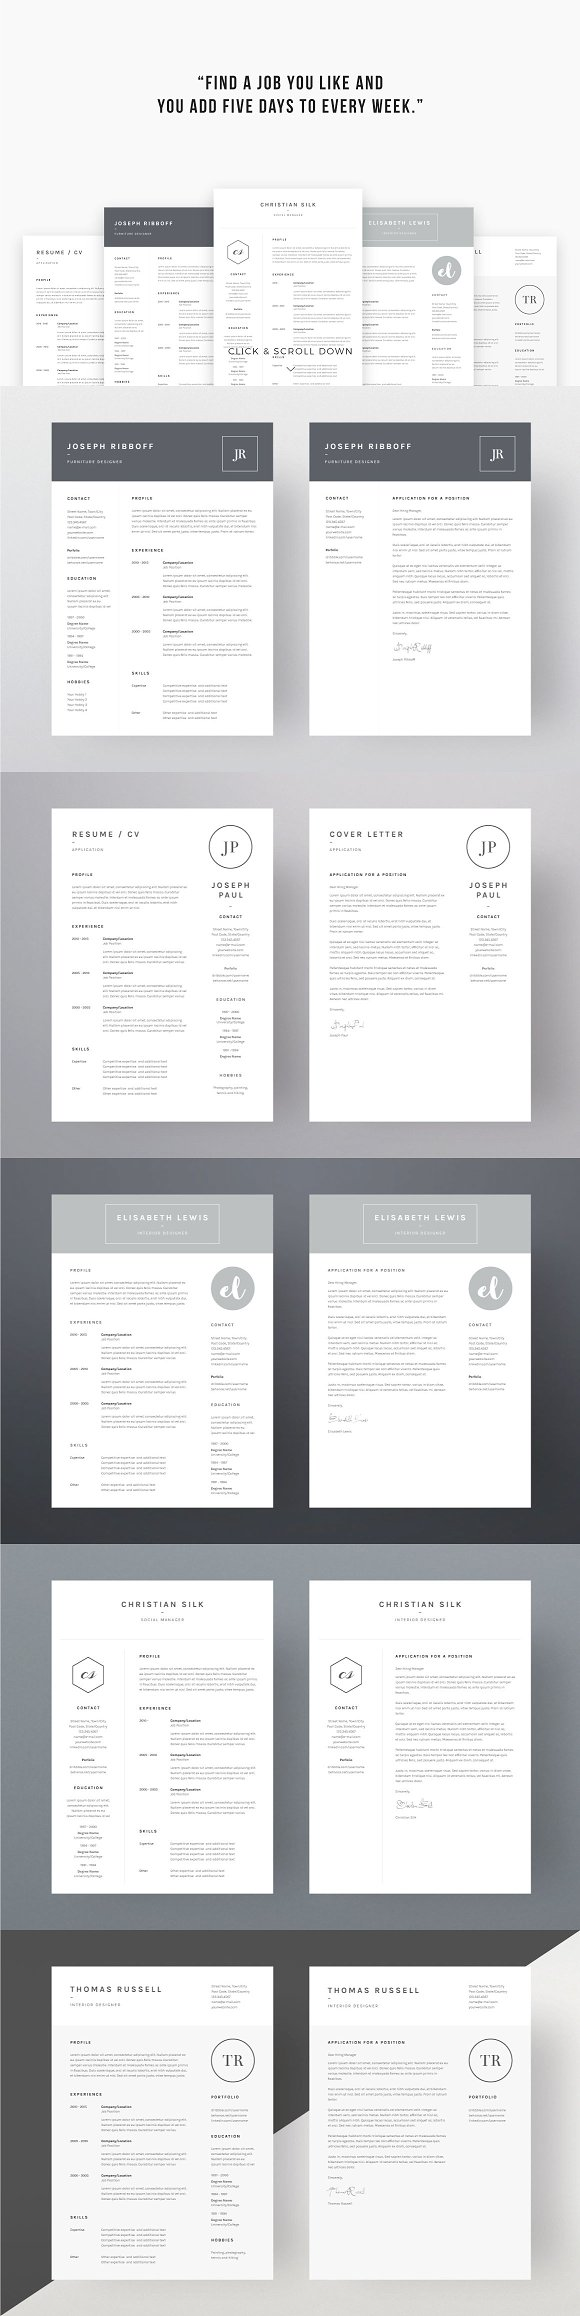 Job Seekers Dream Bundle Resume Templates Creative Market - Graphic design invoice template word michael kors outlet online store